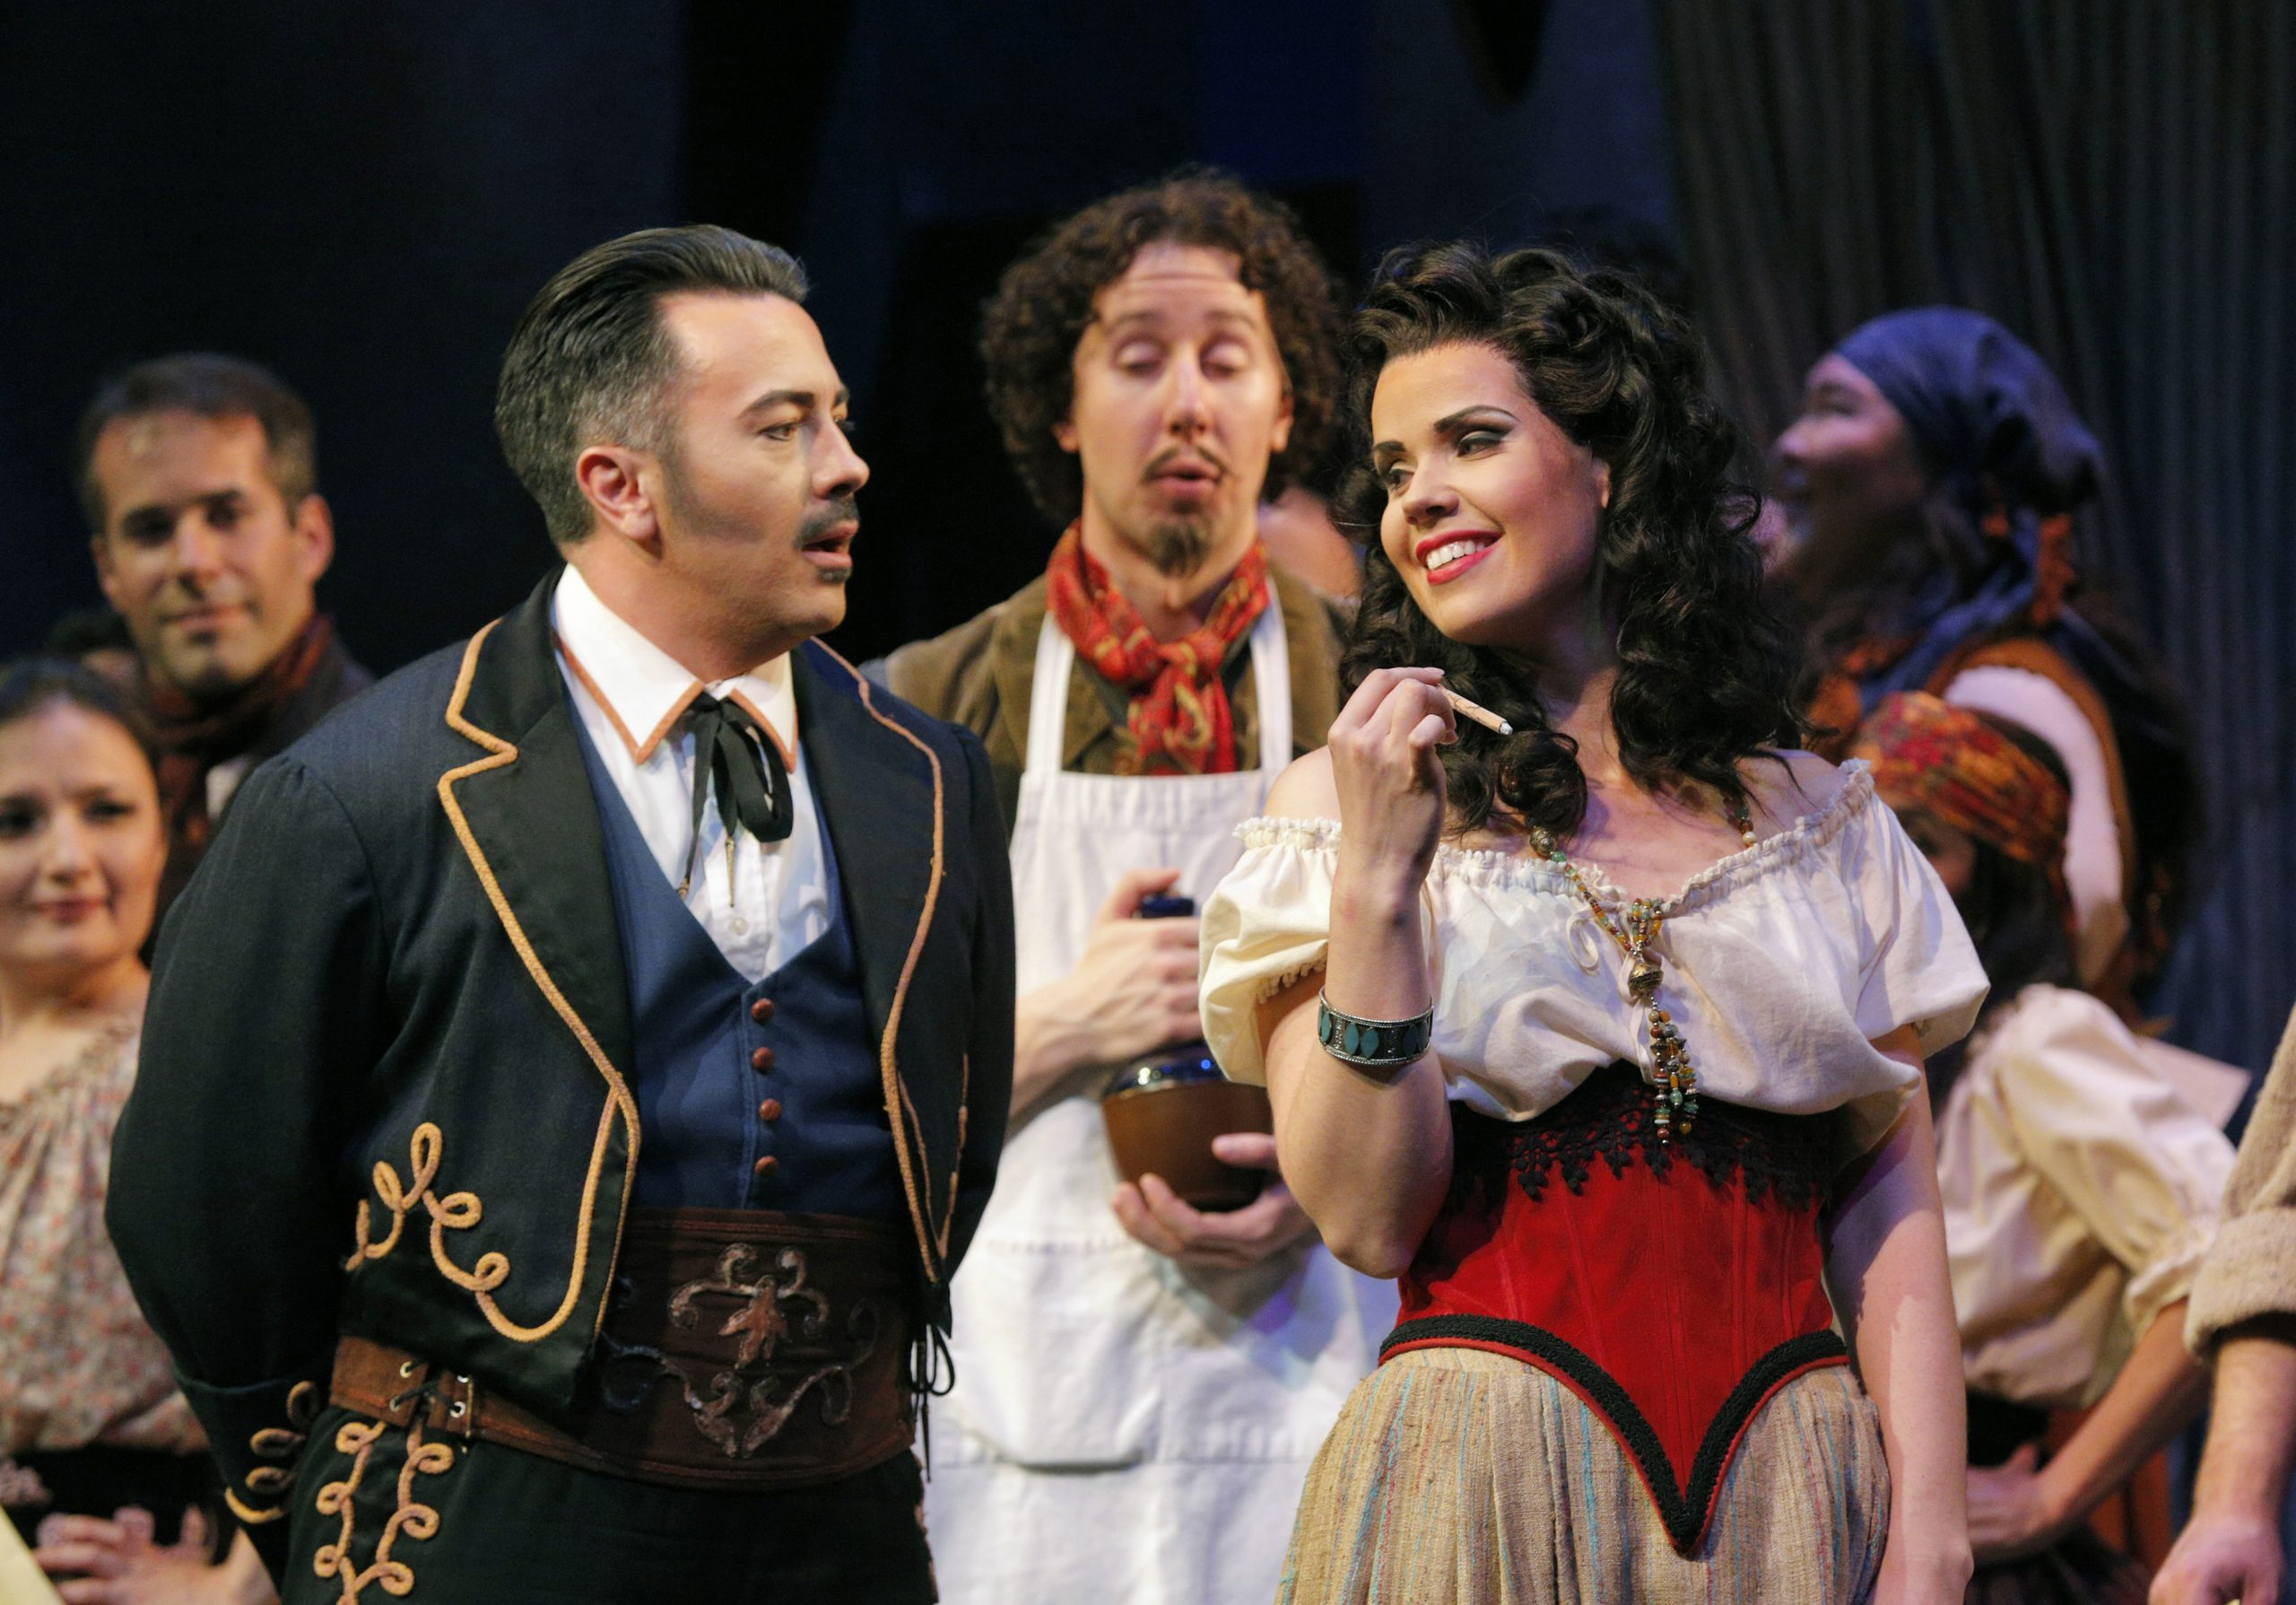 Pittsburgh Opera performs the classic opera 'Carmen' at the Benedum March 26 to April 3, 2022. (photo: Cory Weaver)